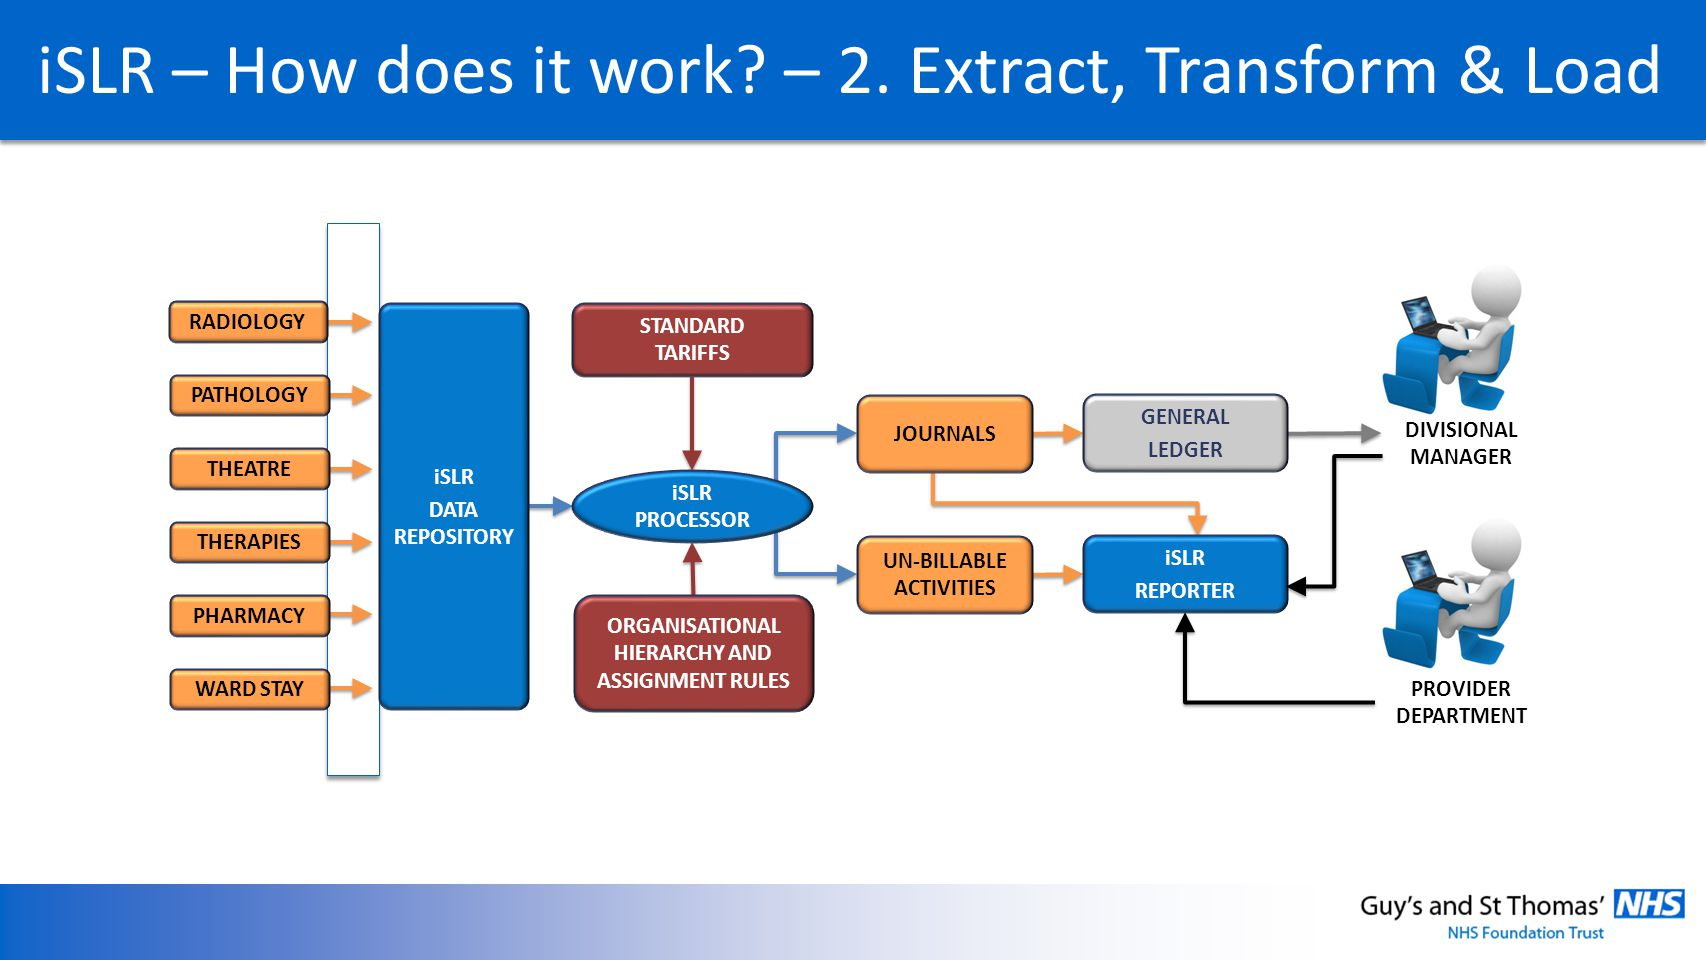 iSLR – How does it work – 2. Extract, Transform & Load